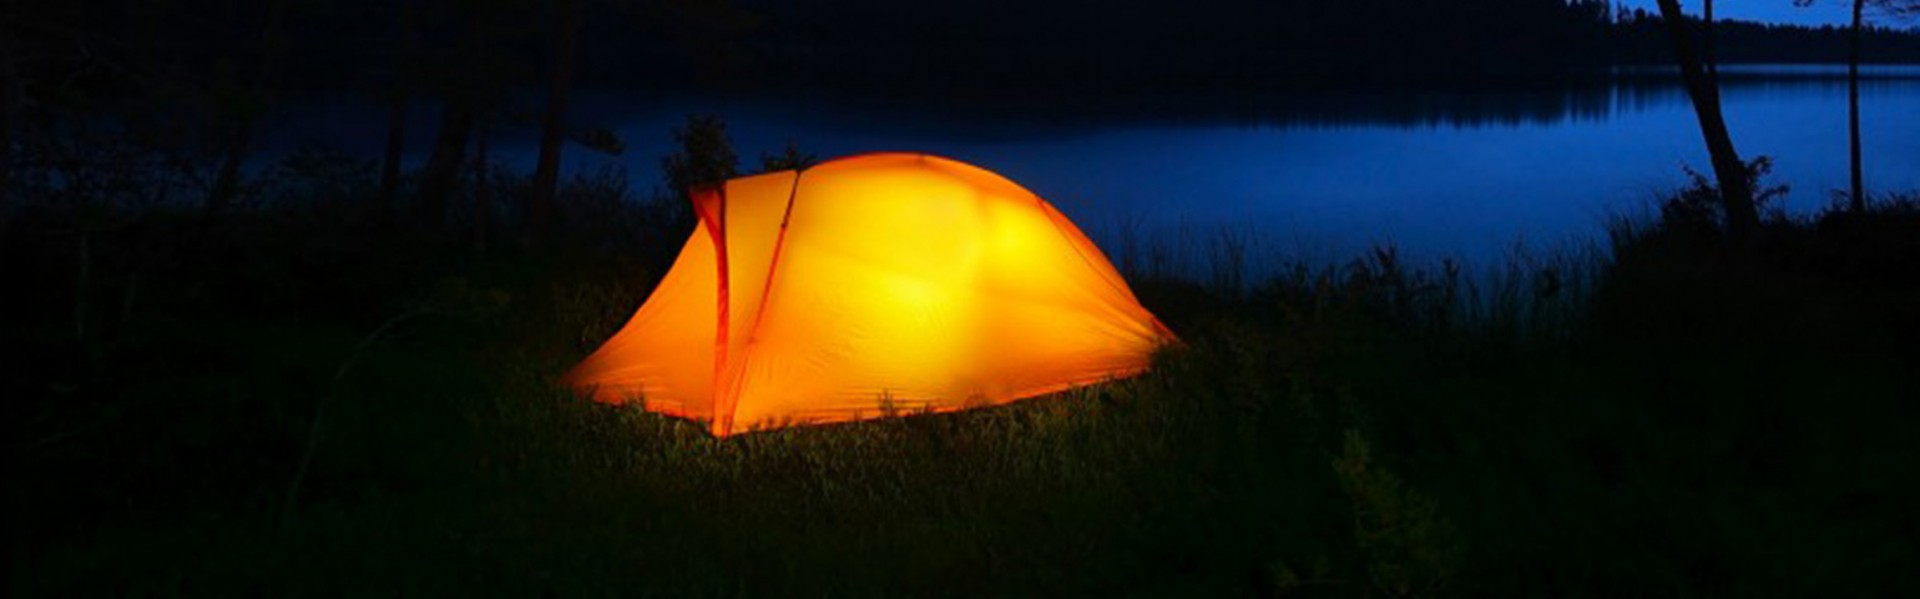 Rent Tents @ 35/- Call Shady 8884700444 or 8792092014 Free Home Delivery